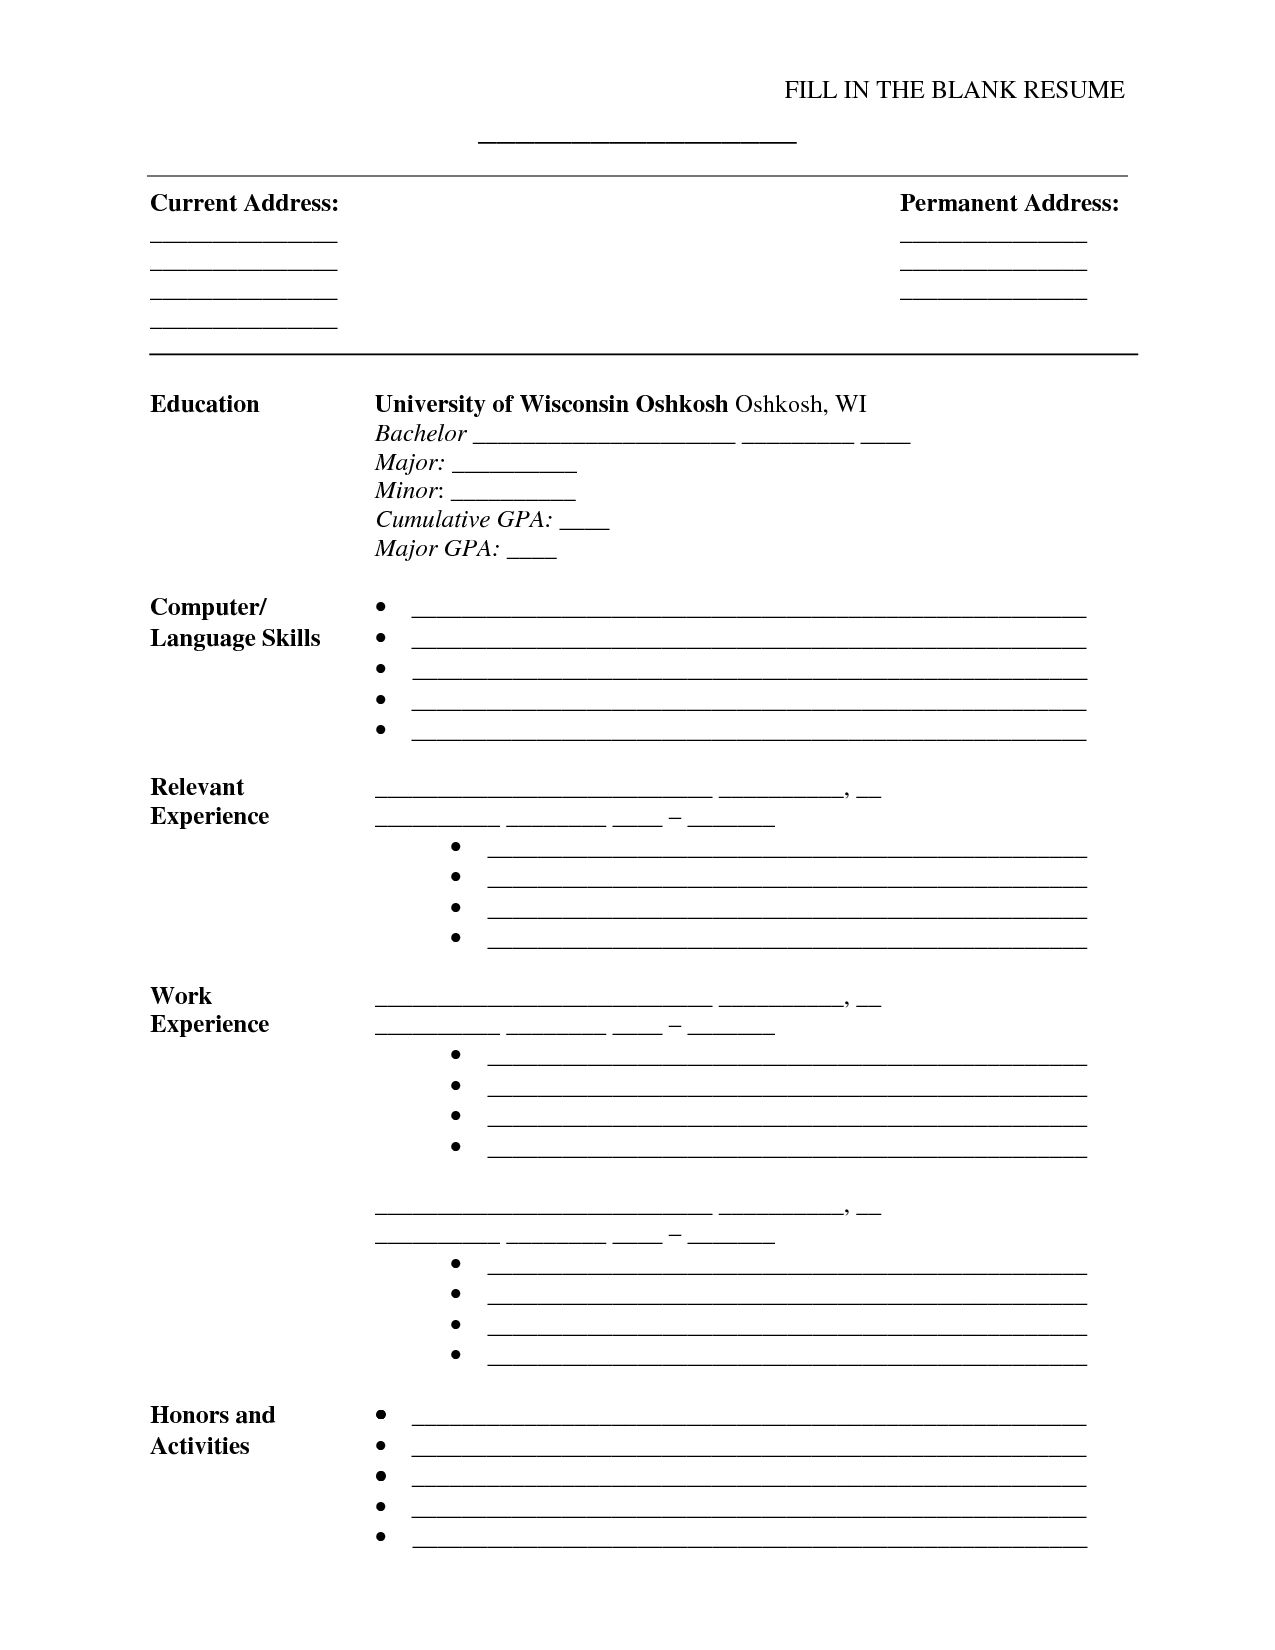 A Cv Template To Fill In Free Printable Resume Templates